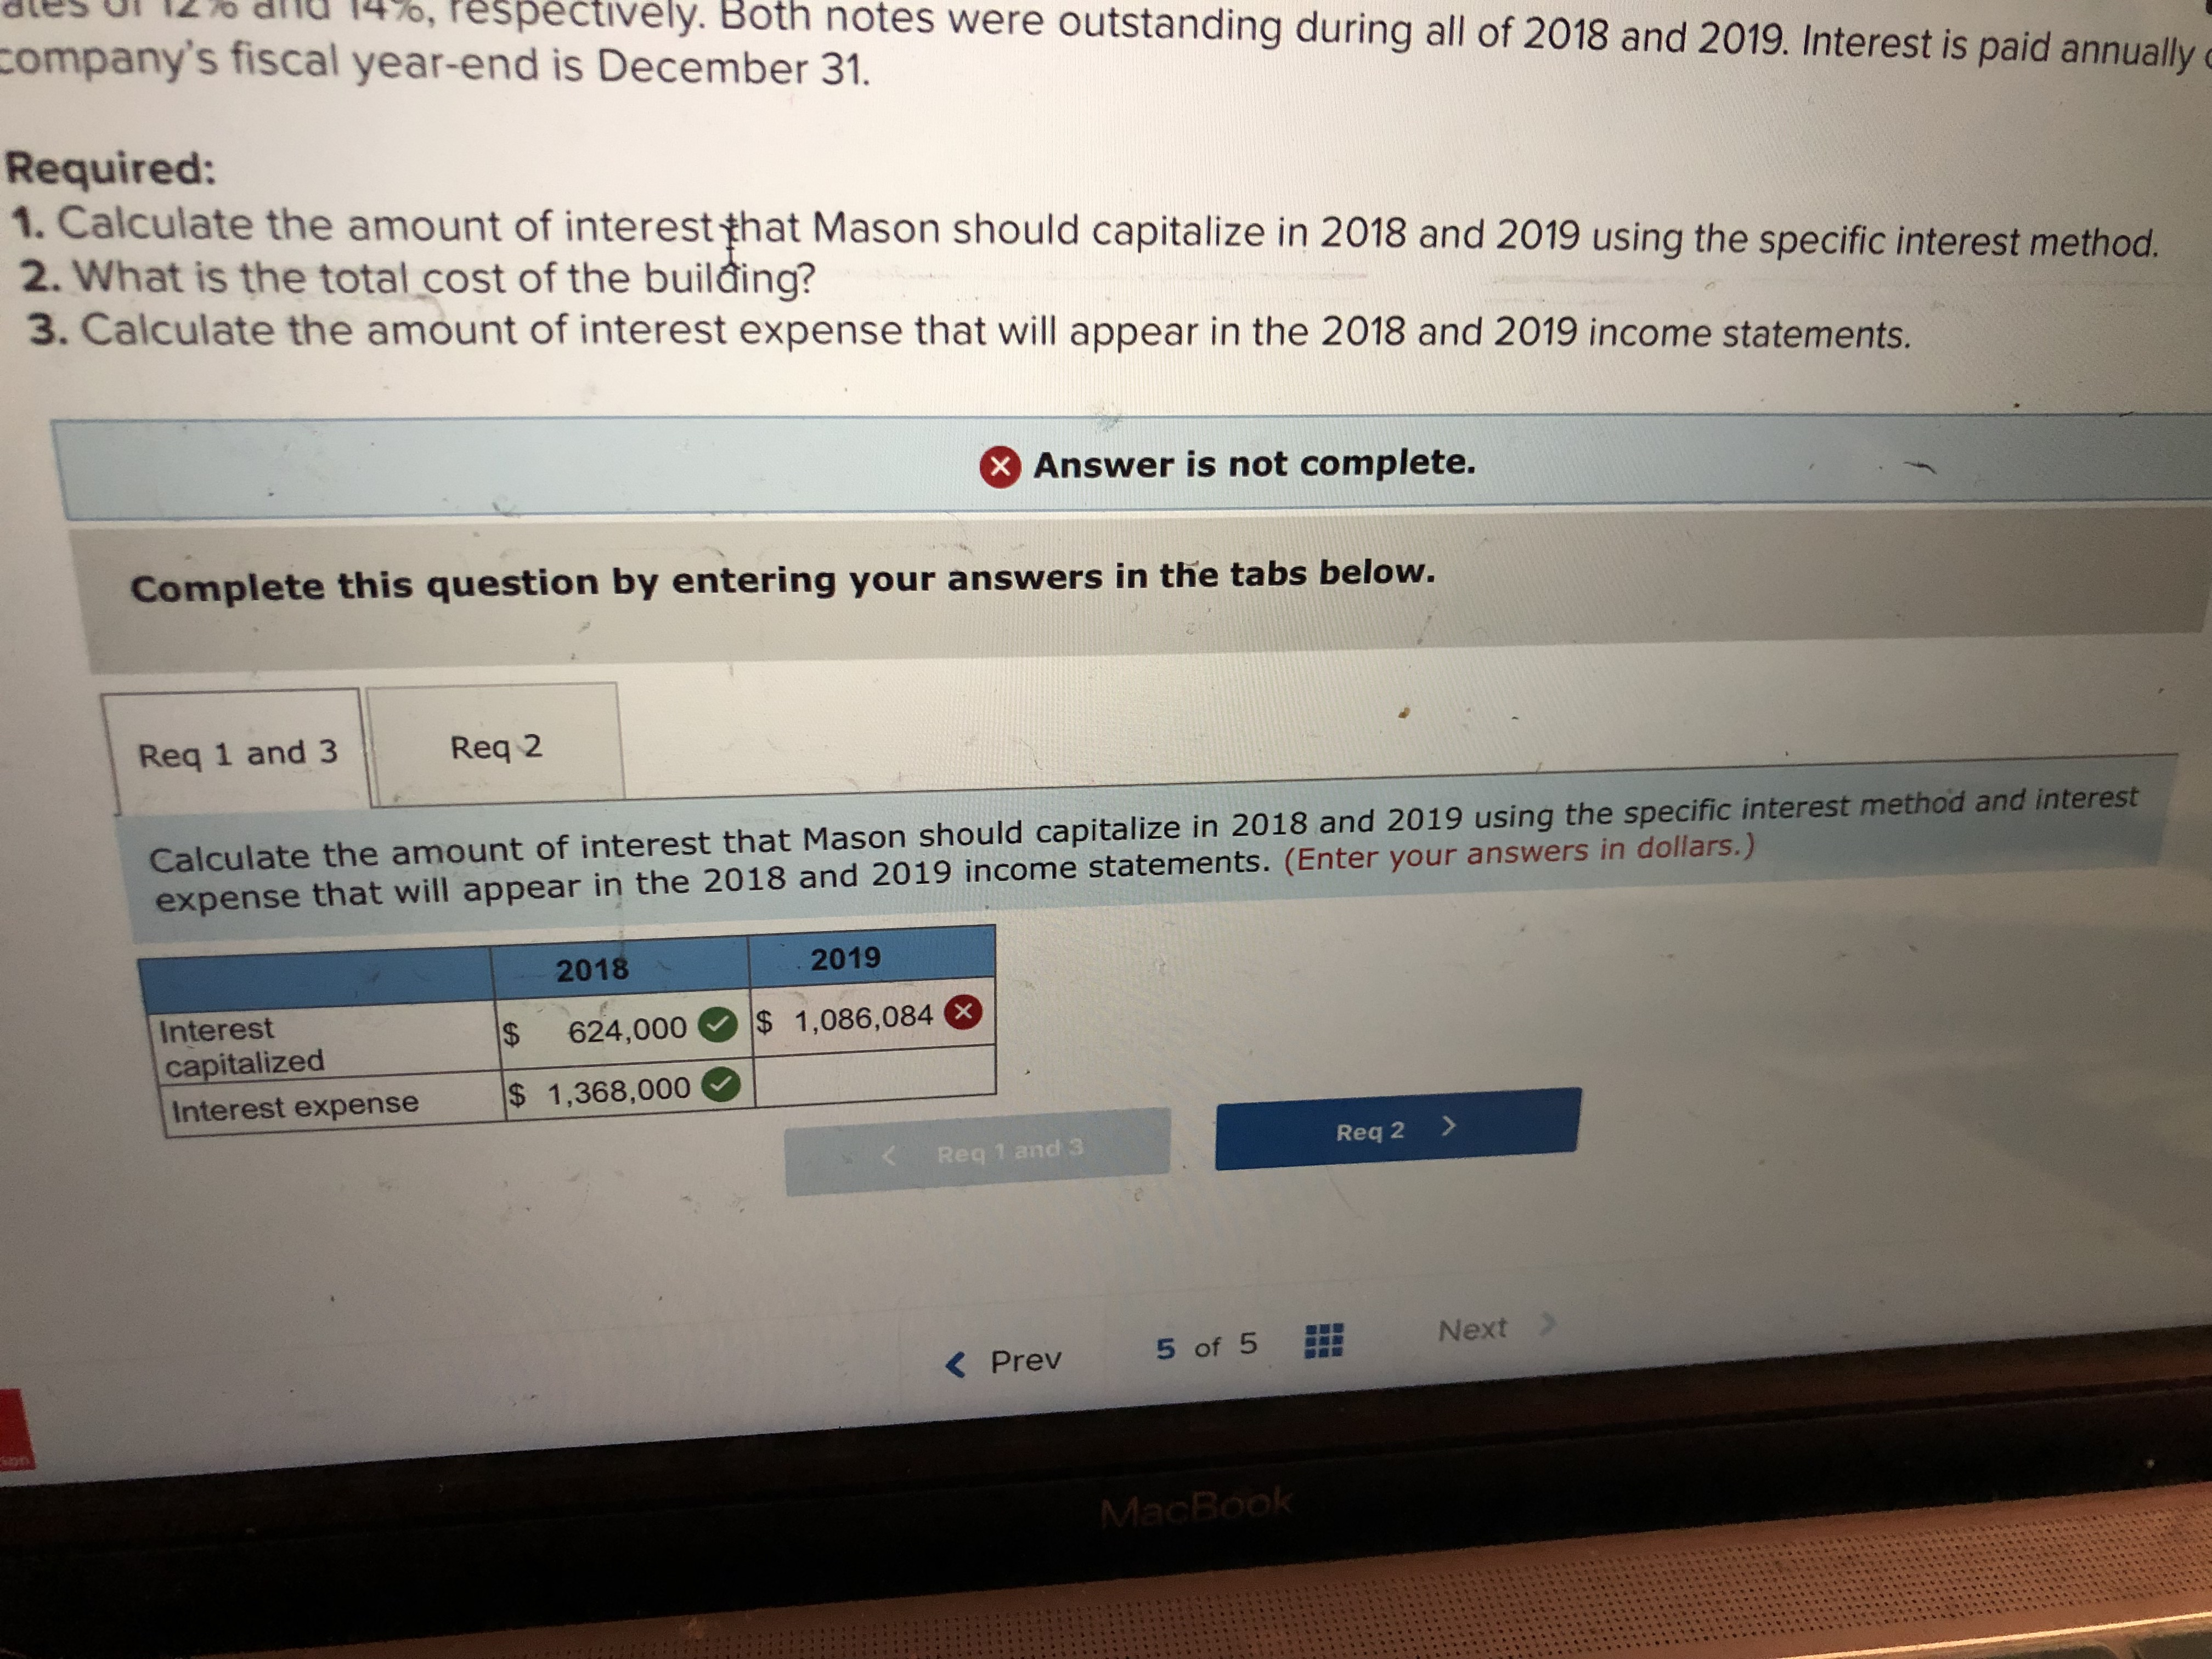 pectively. Both notes were outstanding during all of 2018 and 2019. Interest is paid annually company's fiscal year-end is December 31. Required: 1. Calculate the amount of interest that Mason should capitalize in 2018 and 2019 using the specific interest method. 2. What is the total.cost of the building? 3. Calculate the amount of interest expense that will appear in the 2018 and 2019 income statements. Answer is not complete. Complete this question by entering your answers in the tabs below. Req 1 and 3 Req 2 Calculate the amount of interest that Mason should capitalize in 2018 and 2019 using the specific interest method and interest expense that will appear in the 2018 and 2019 income statements. (Enter your answers in dollars.) 2018 2019 Interest capitalized Interest expense s 1,368,000 624,00o 1,086,084 Req 1 and 3 Req 2> < Prev 5of 5 Next